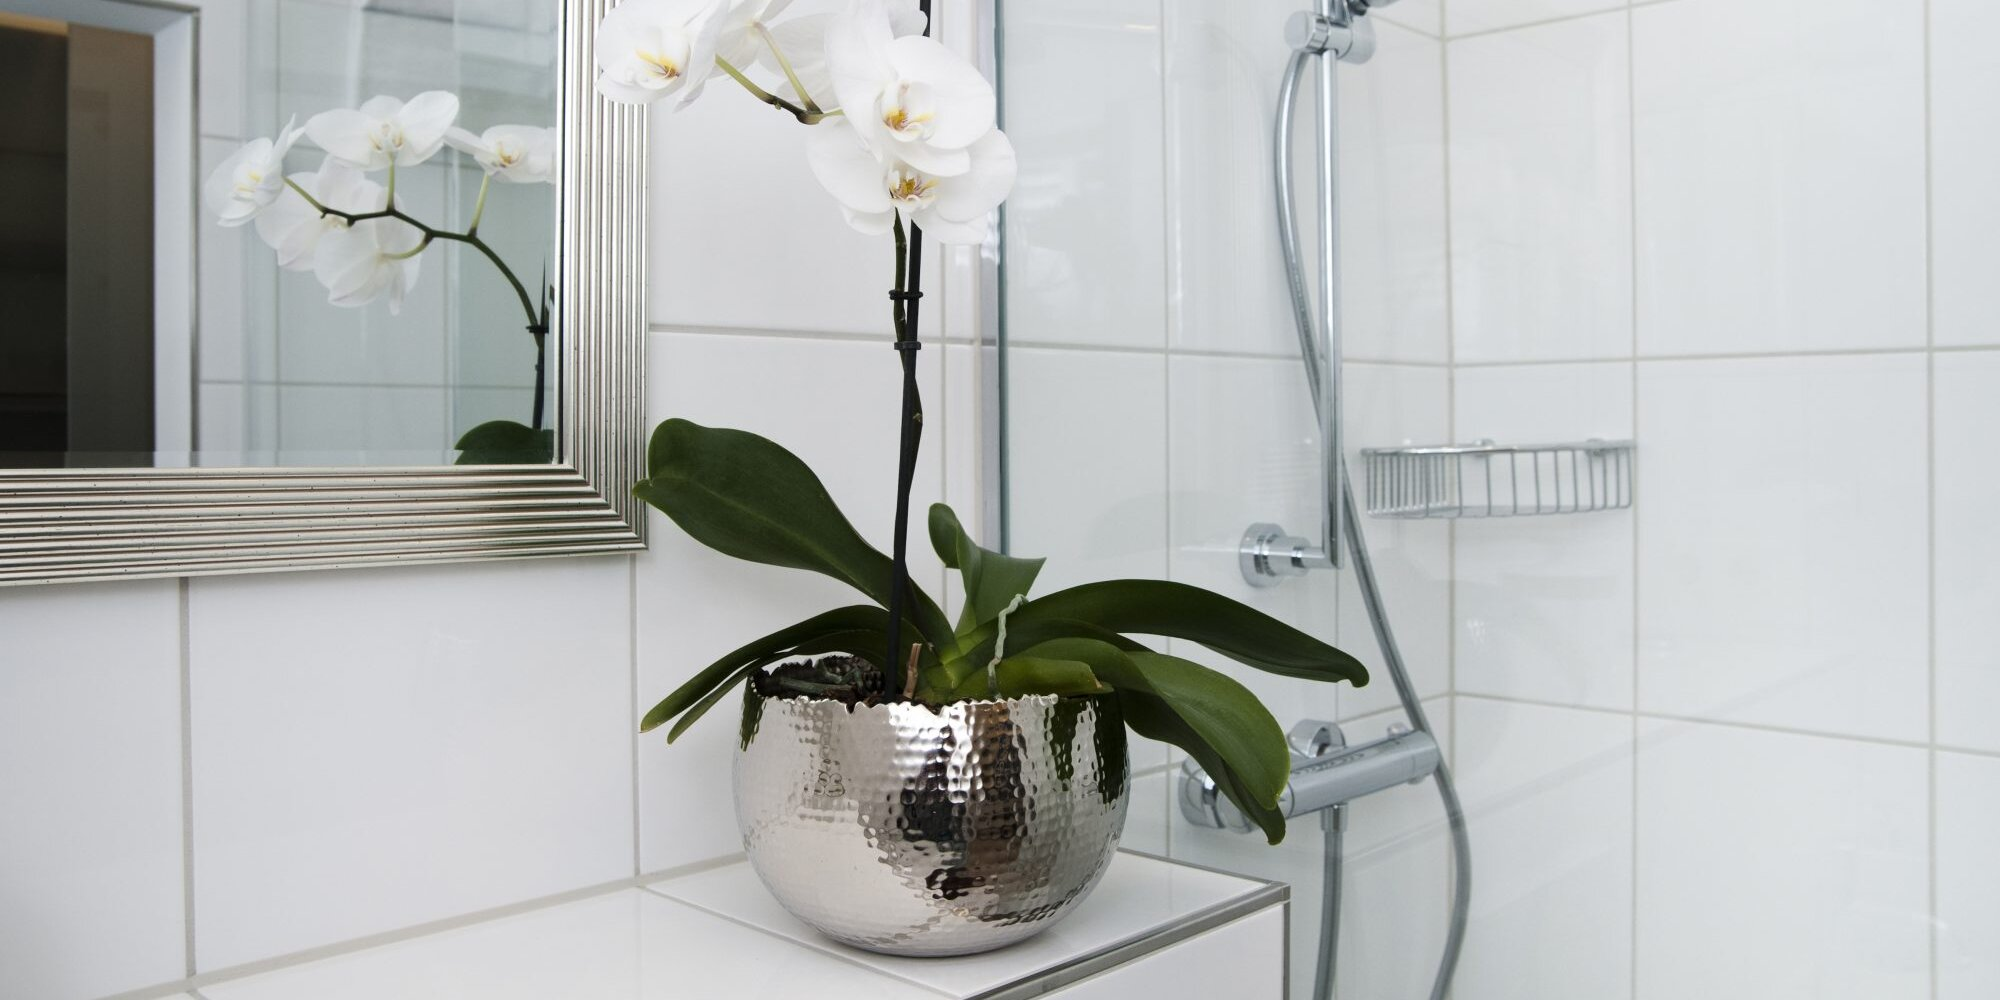 7 Shower Plants to Turn Your Bathroom Into an Oasis